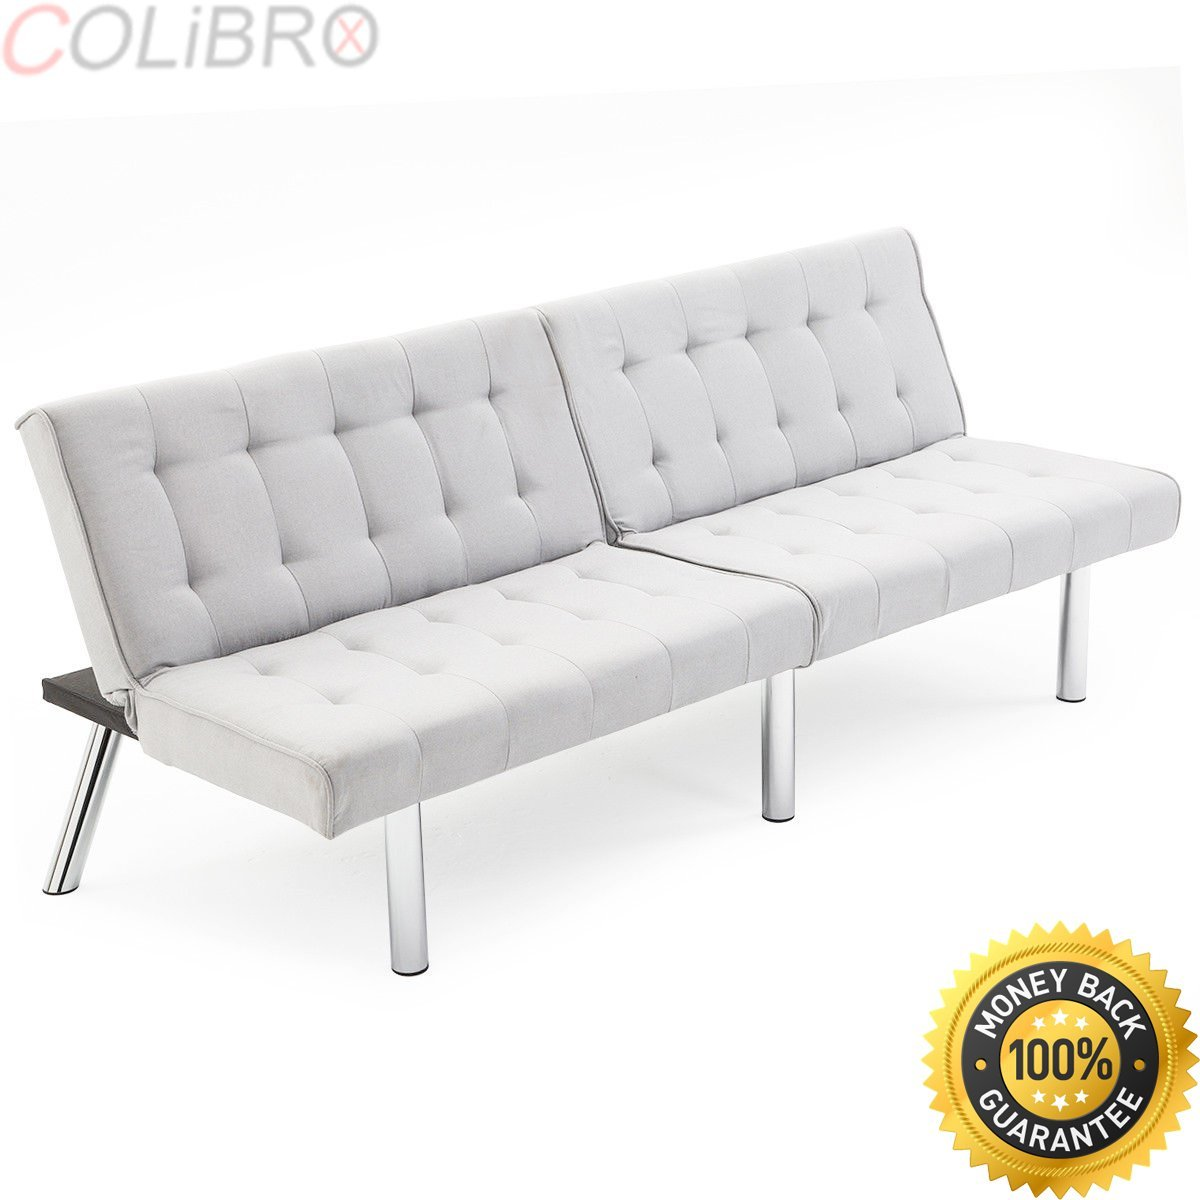 Phenomenal Cheap Futons Bed Find Futons Bed Deals On Line At Alibaba Com Machost Co Dining Chair Design Ideas Machostcouk